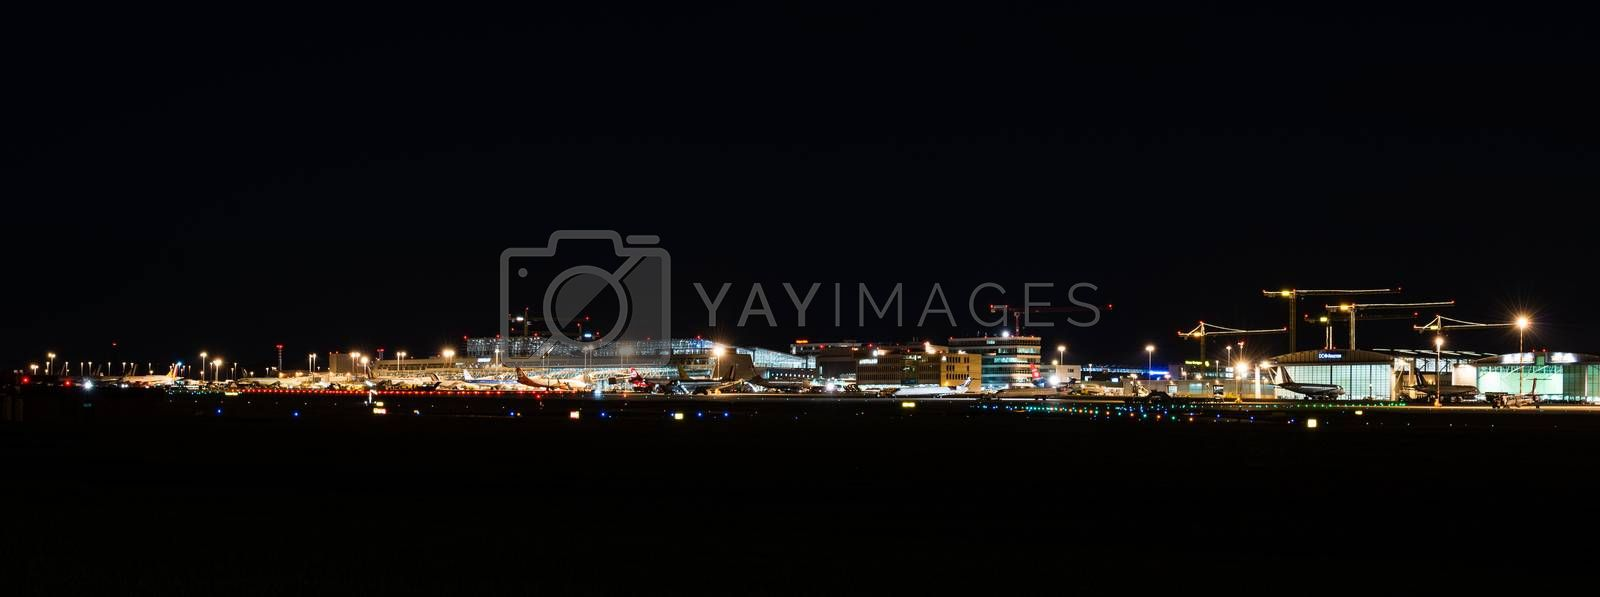 STUTTGART, GERMANY - MAY 6, 2014: Wide angle shot of Stuttgart Airport at dusk with planes departing and arriving as seen from over the fields on May, 6, 2014 in Stuttgart, Germany. Stuttgart Airport is the 6th biggest airport in Germany, having a capacity of 14 million people per year.